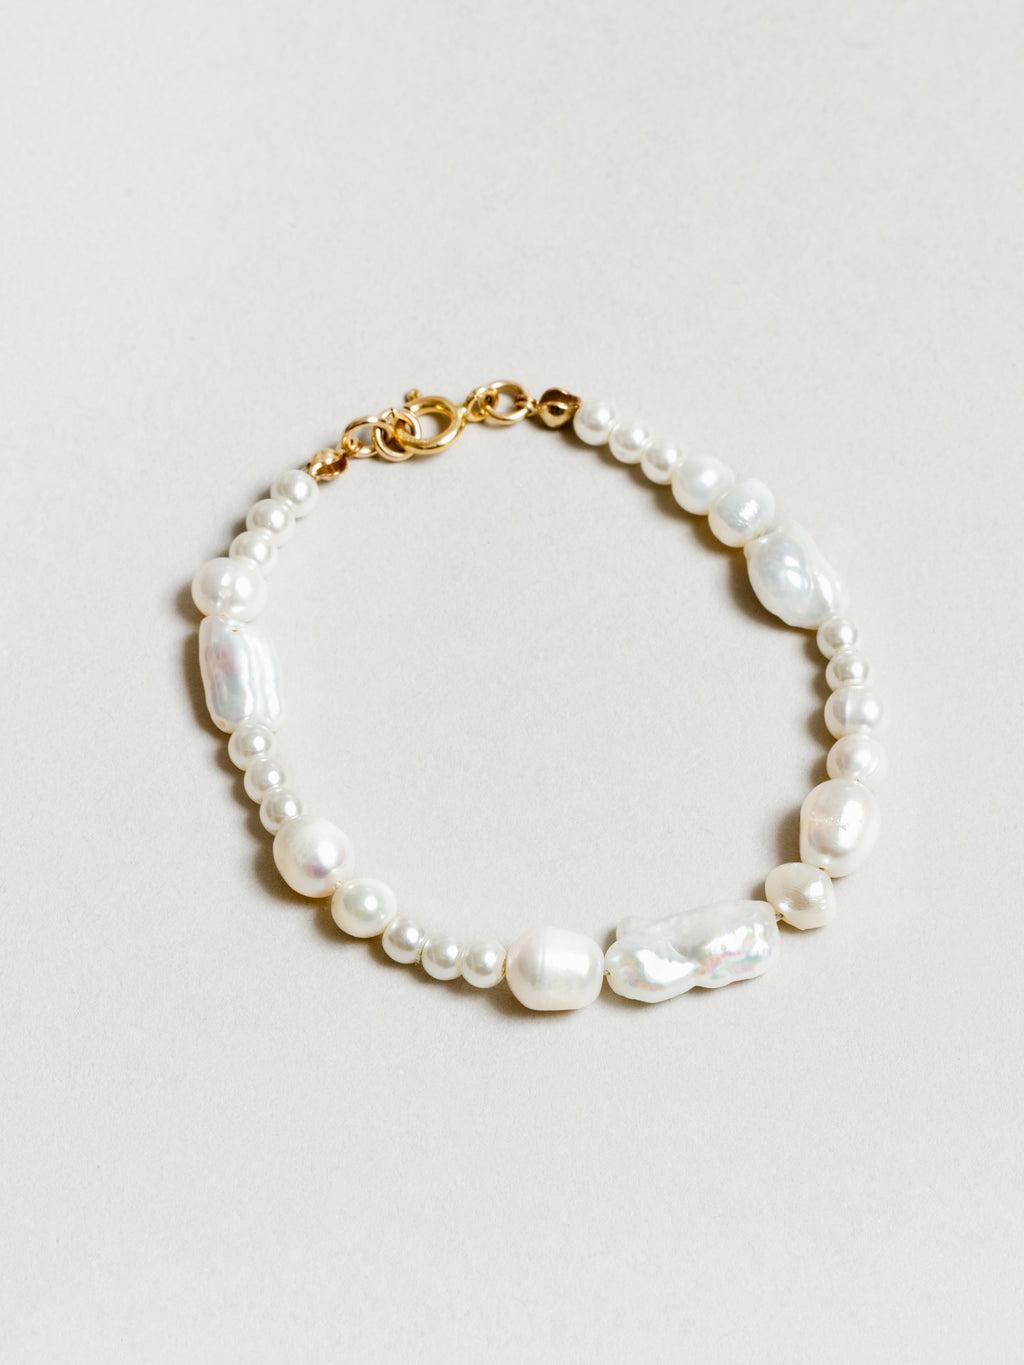 Pearl bracelet with varied sized pearls and gold clasp.